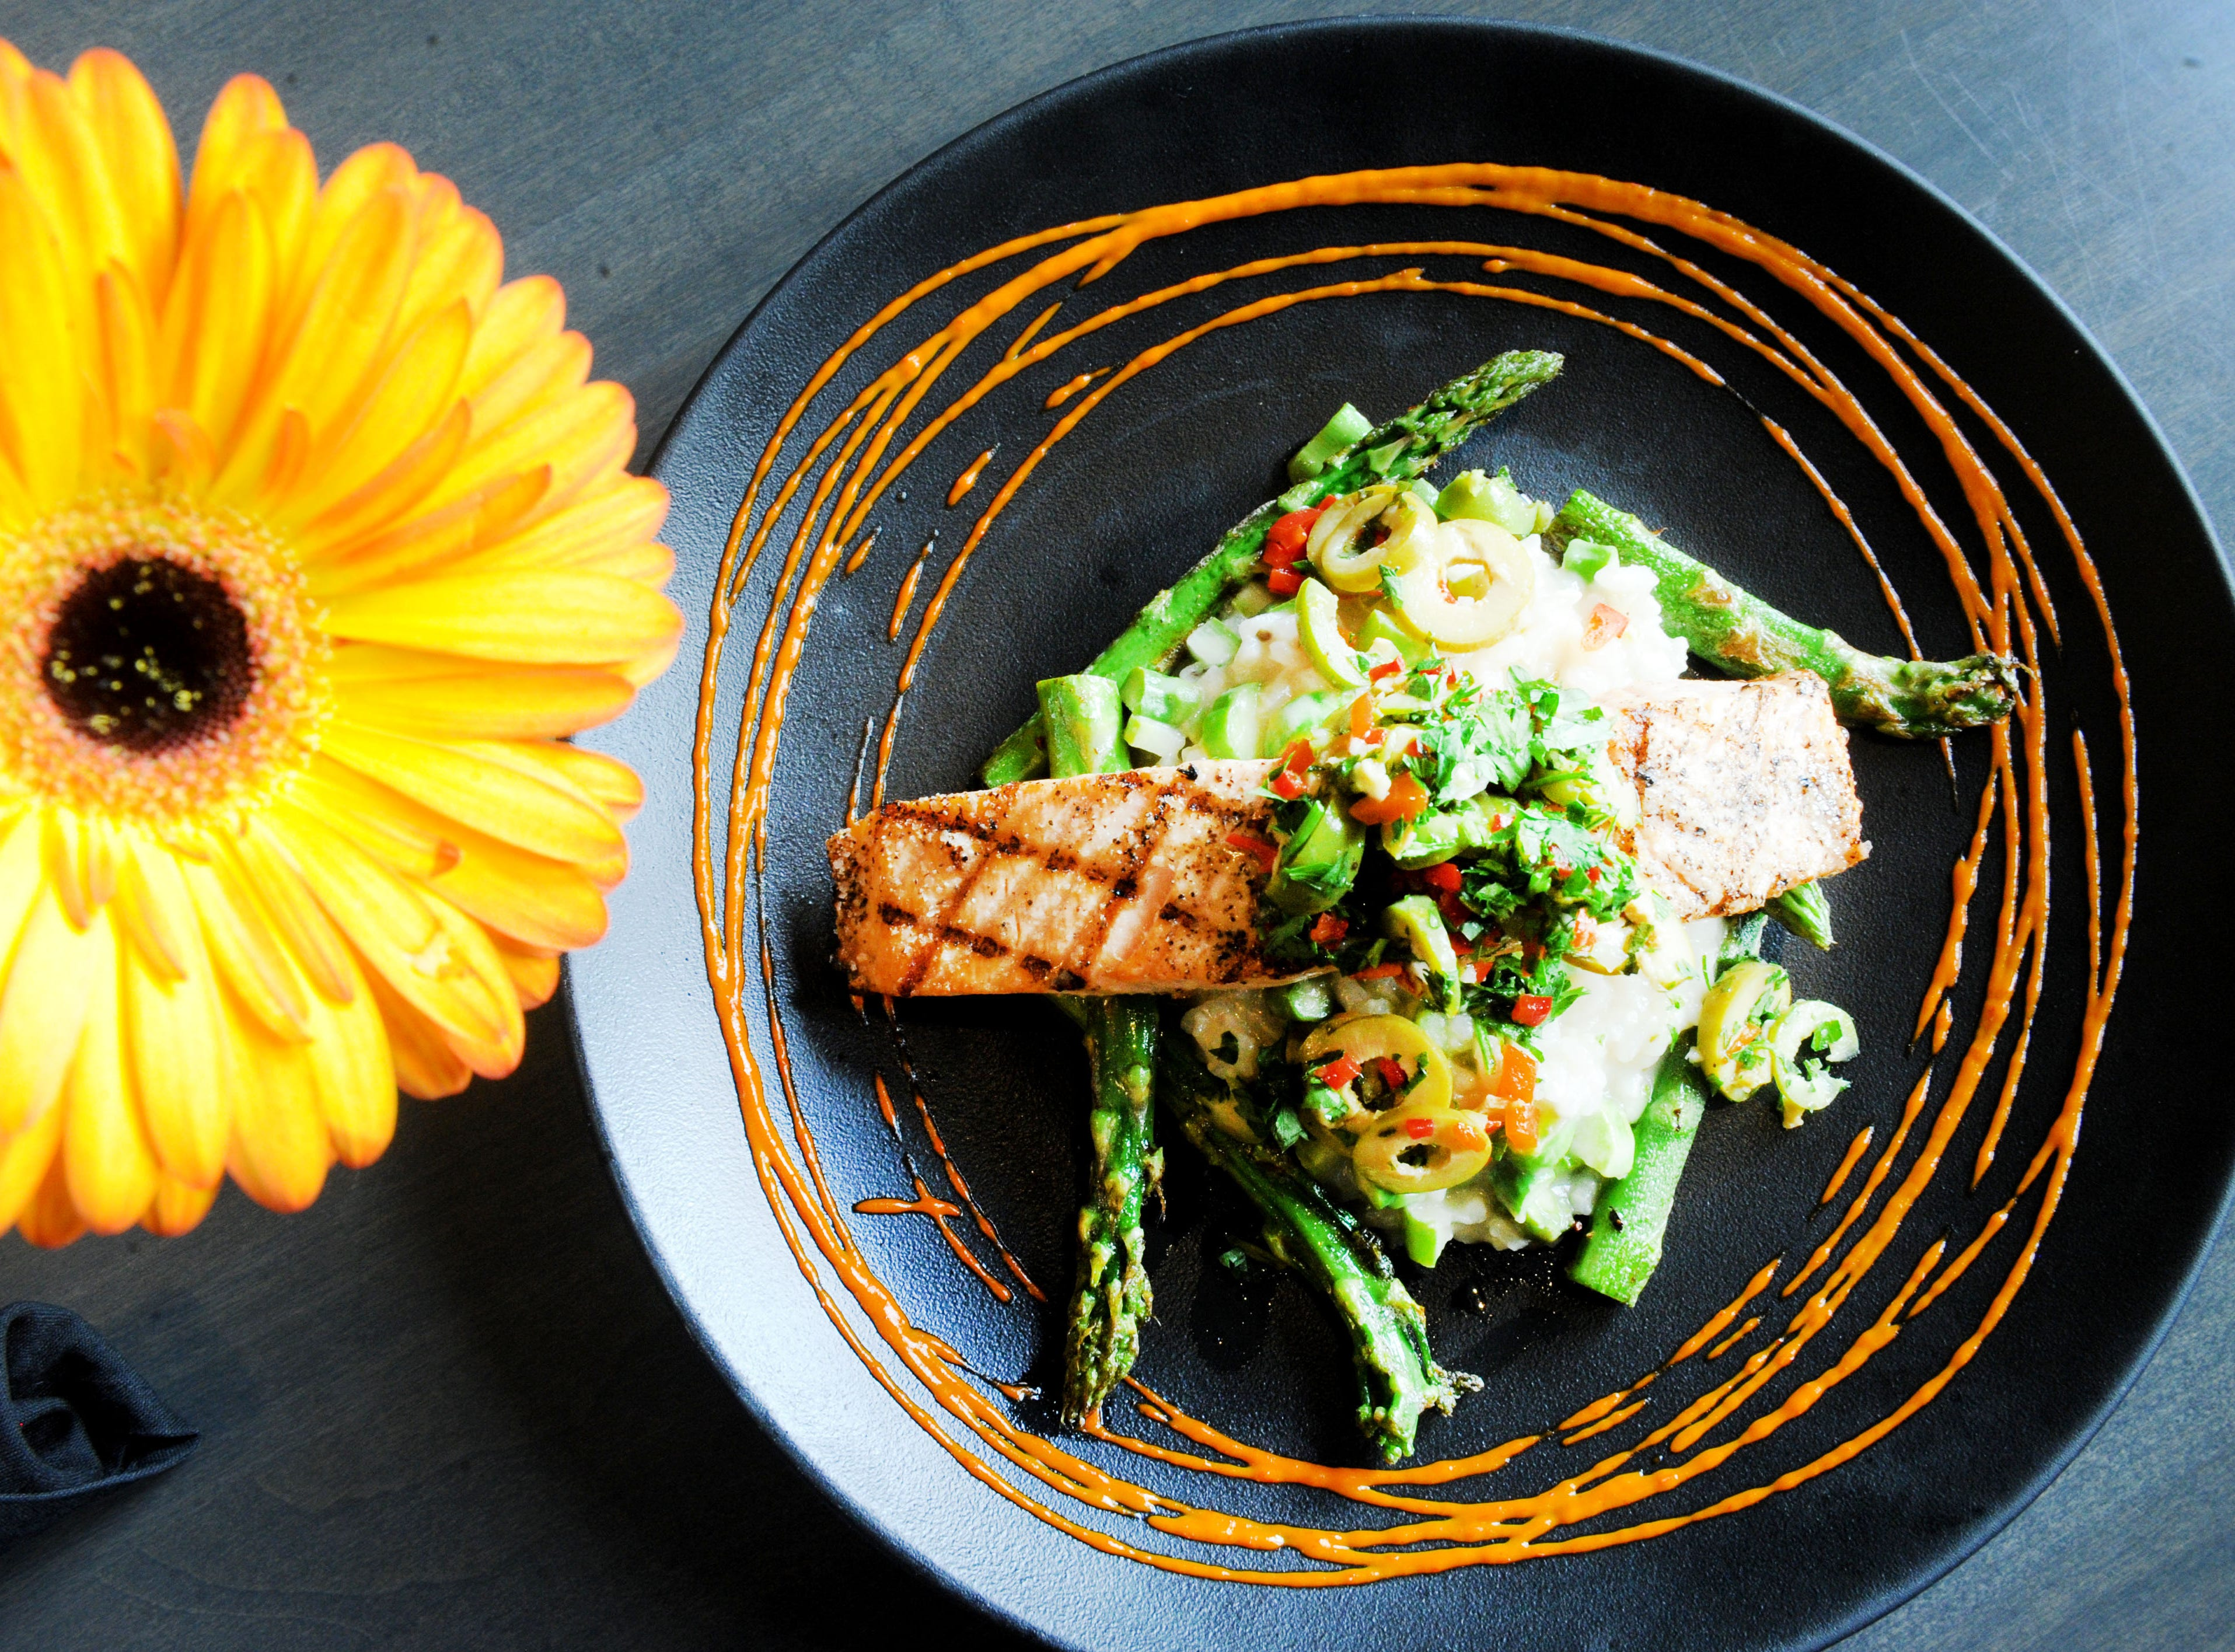 The grilled salmon is served with asparagus risotto, olive relish and roasted pepper aioli at Slate Bistro & Craft Bar in Camarillo.